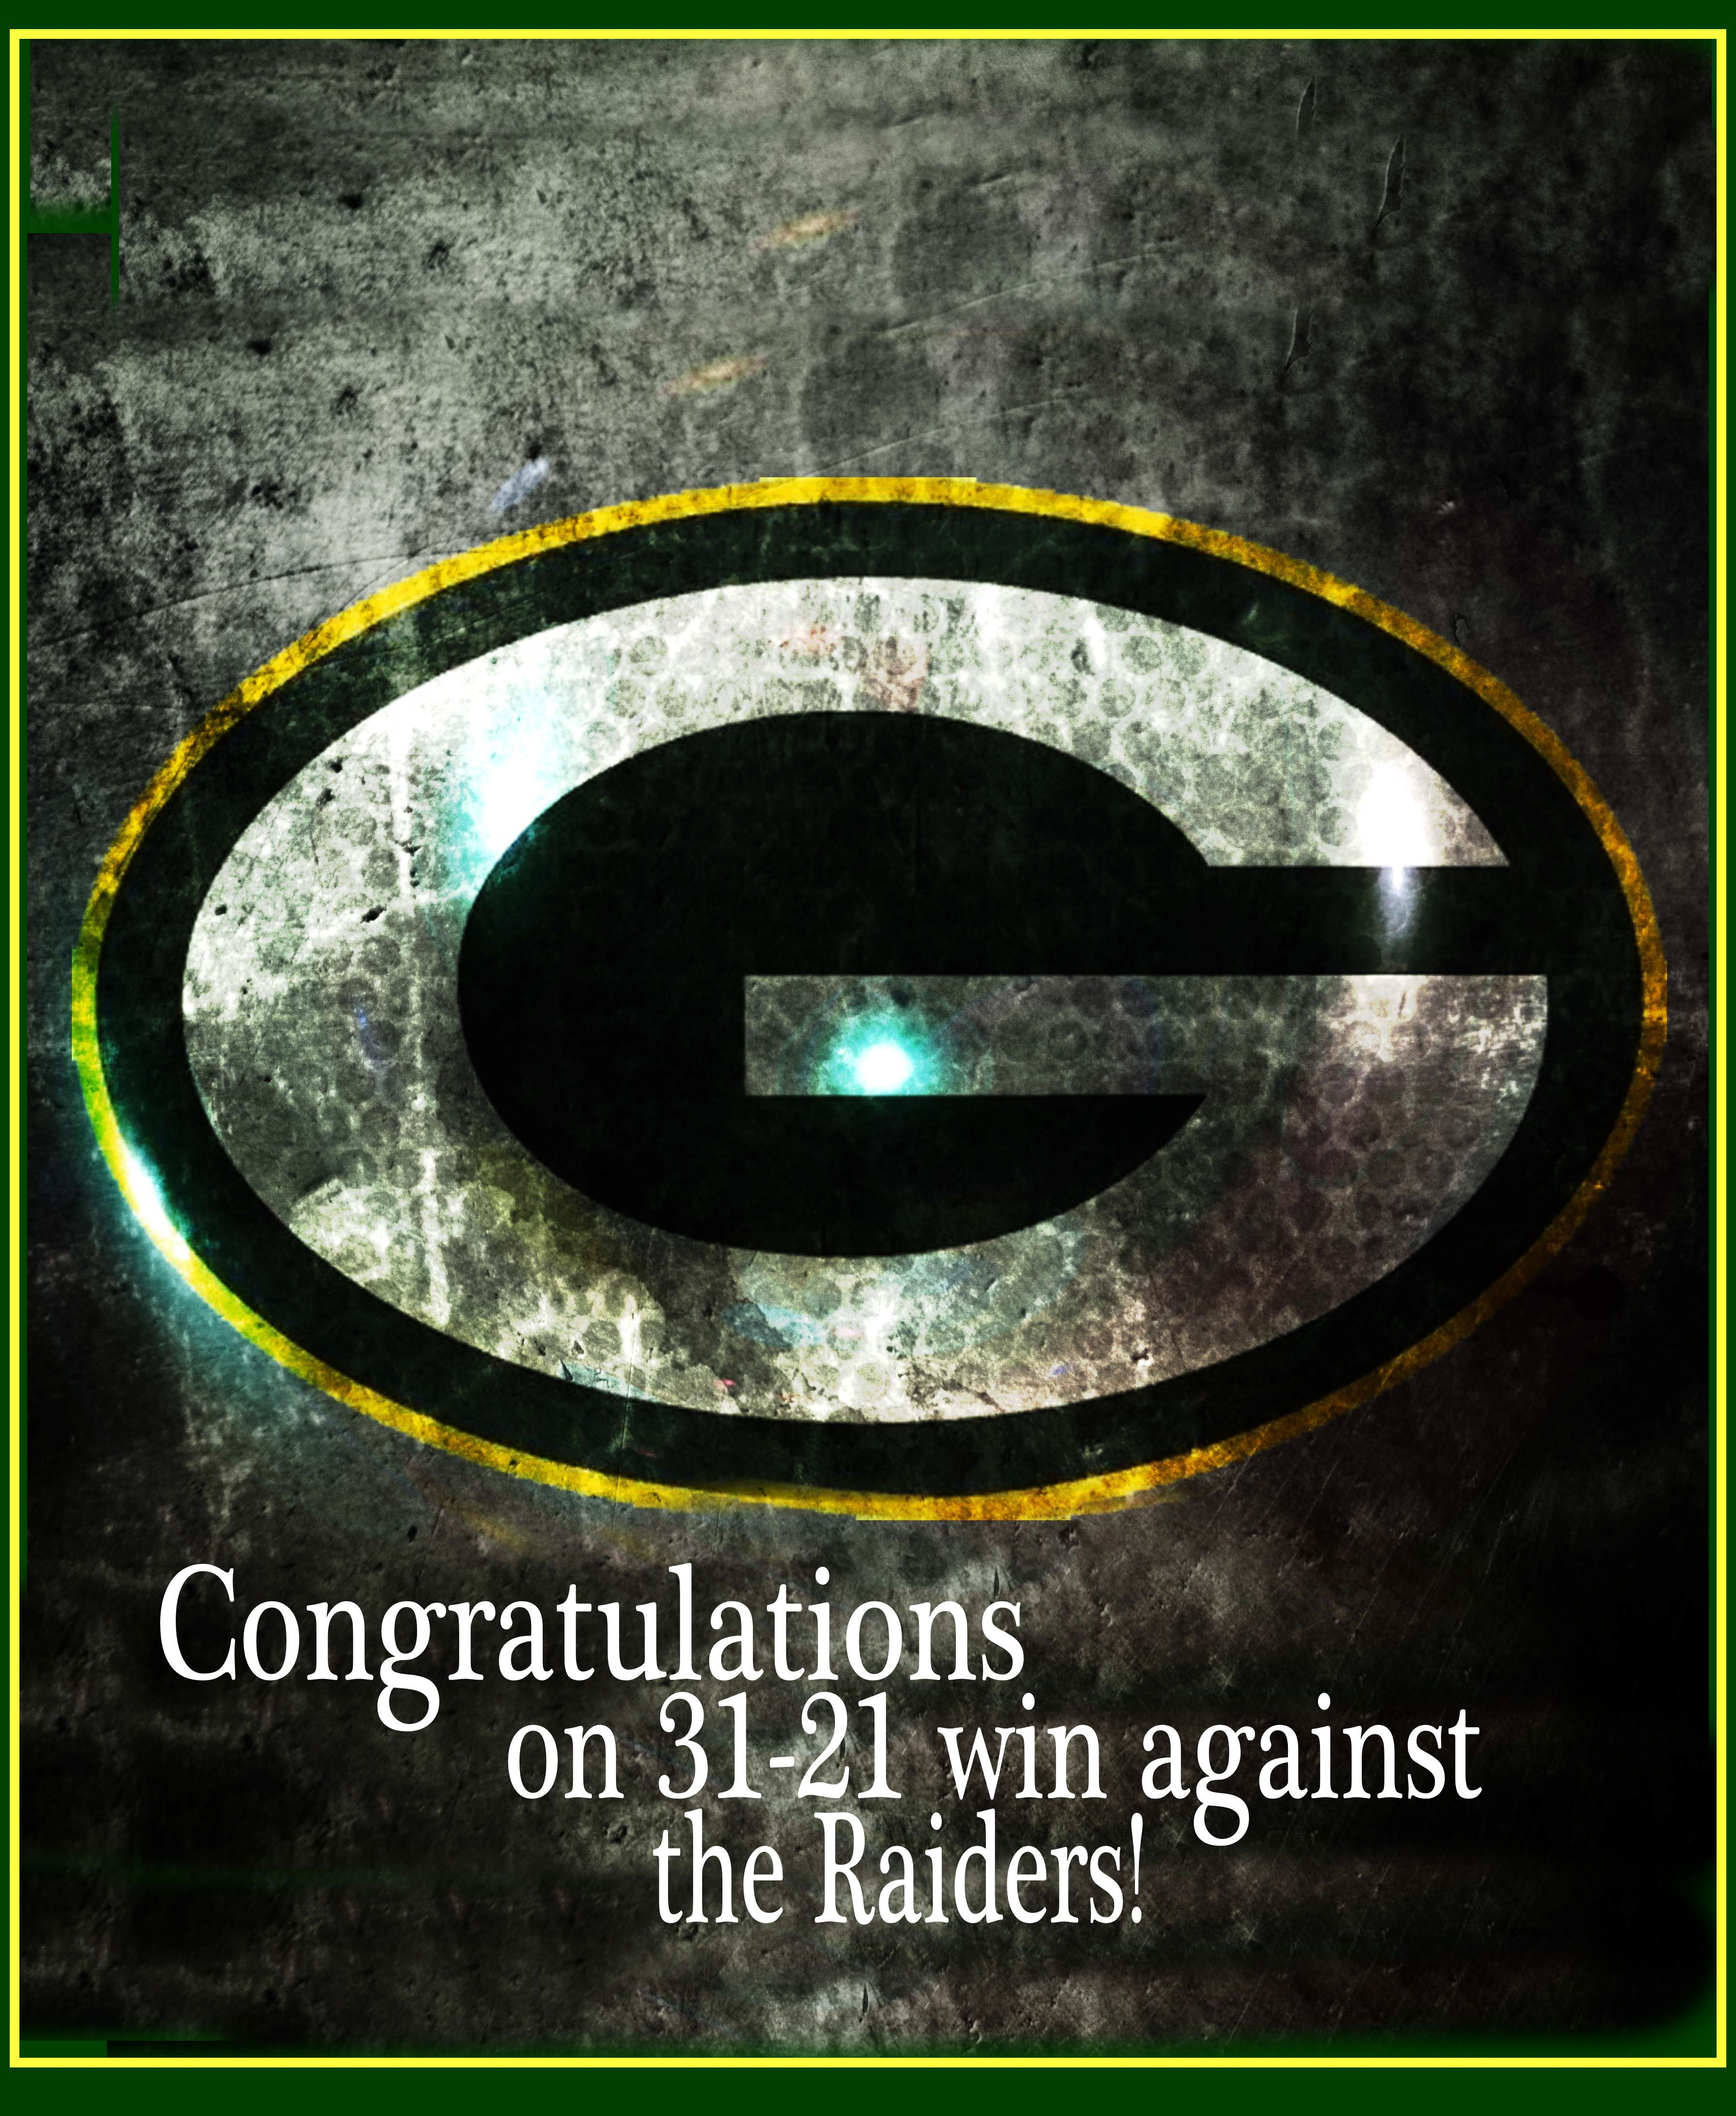 Packers Win Green Bay Packers Wallpaper Green Bay Packers Pictures Green Bay Packers